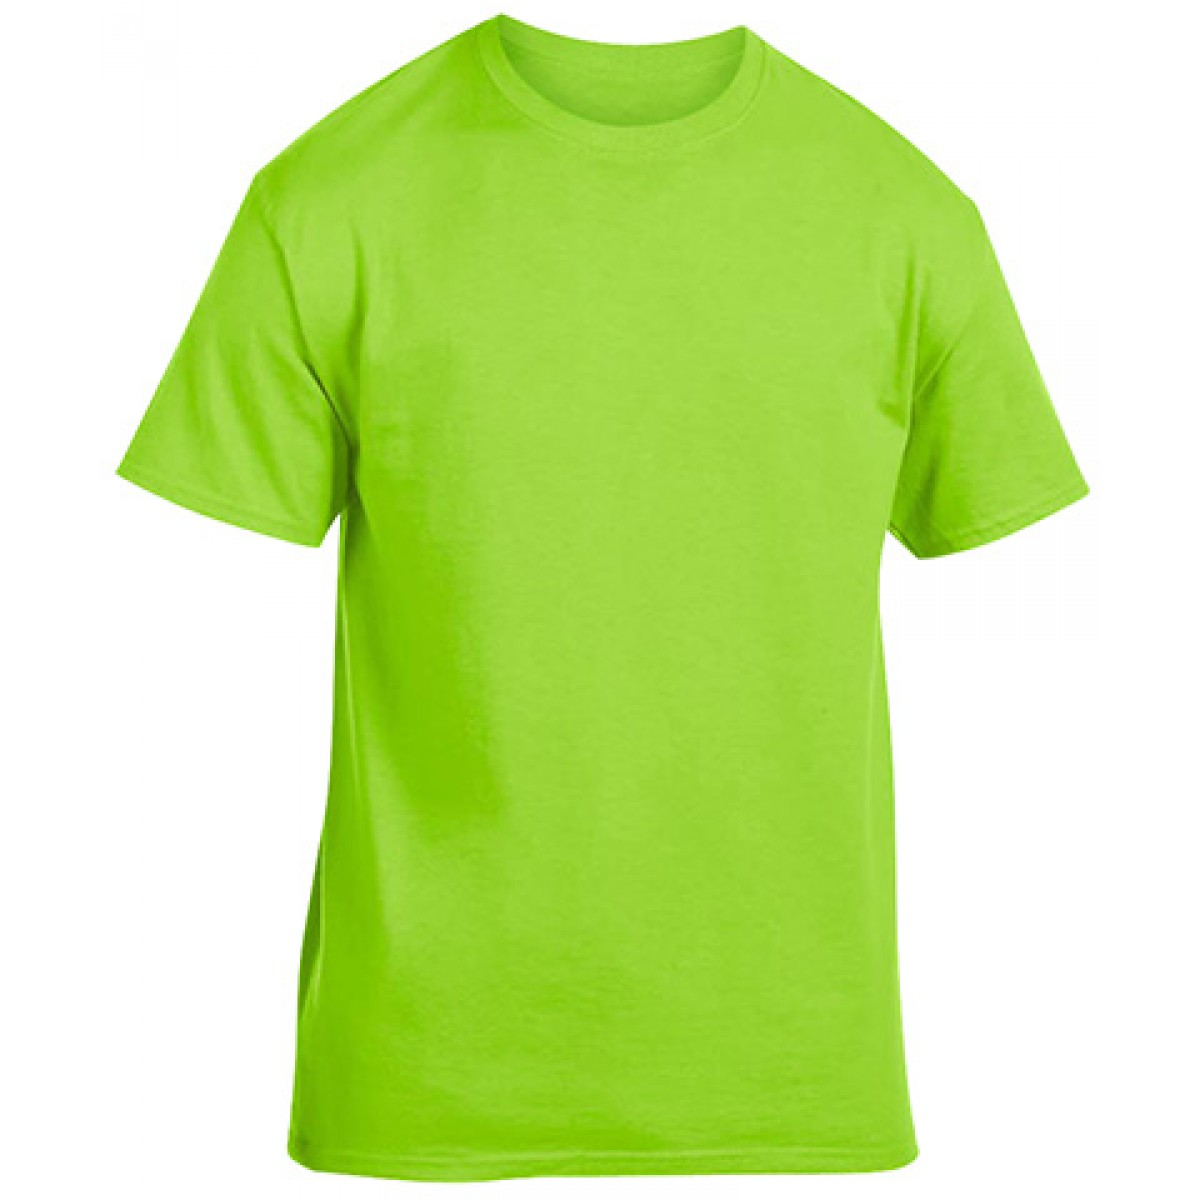 Soft 100% Cotton T-Shirt-Lime Green-L